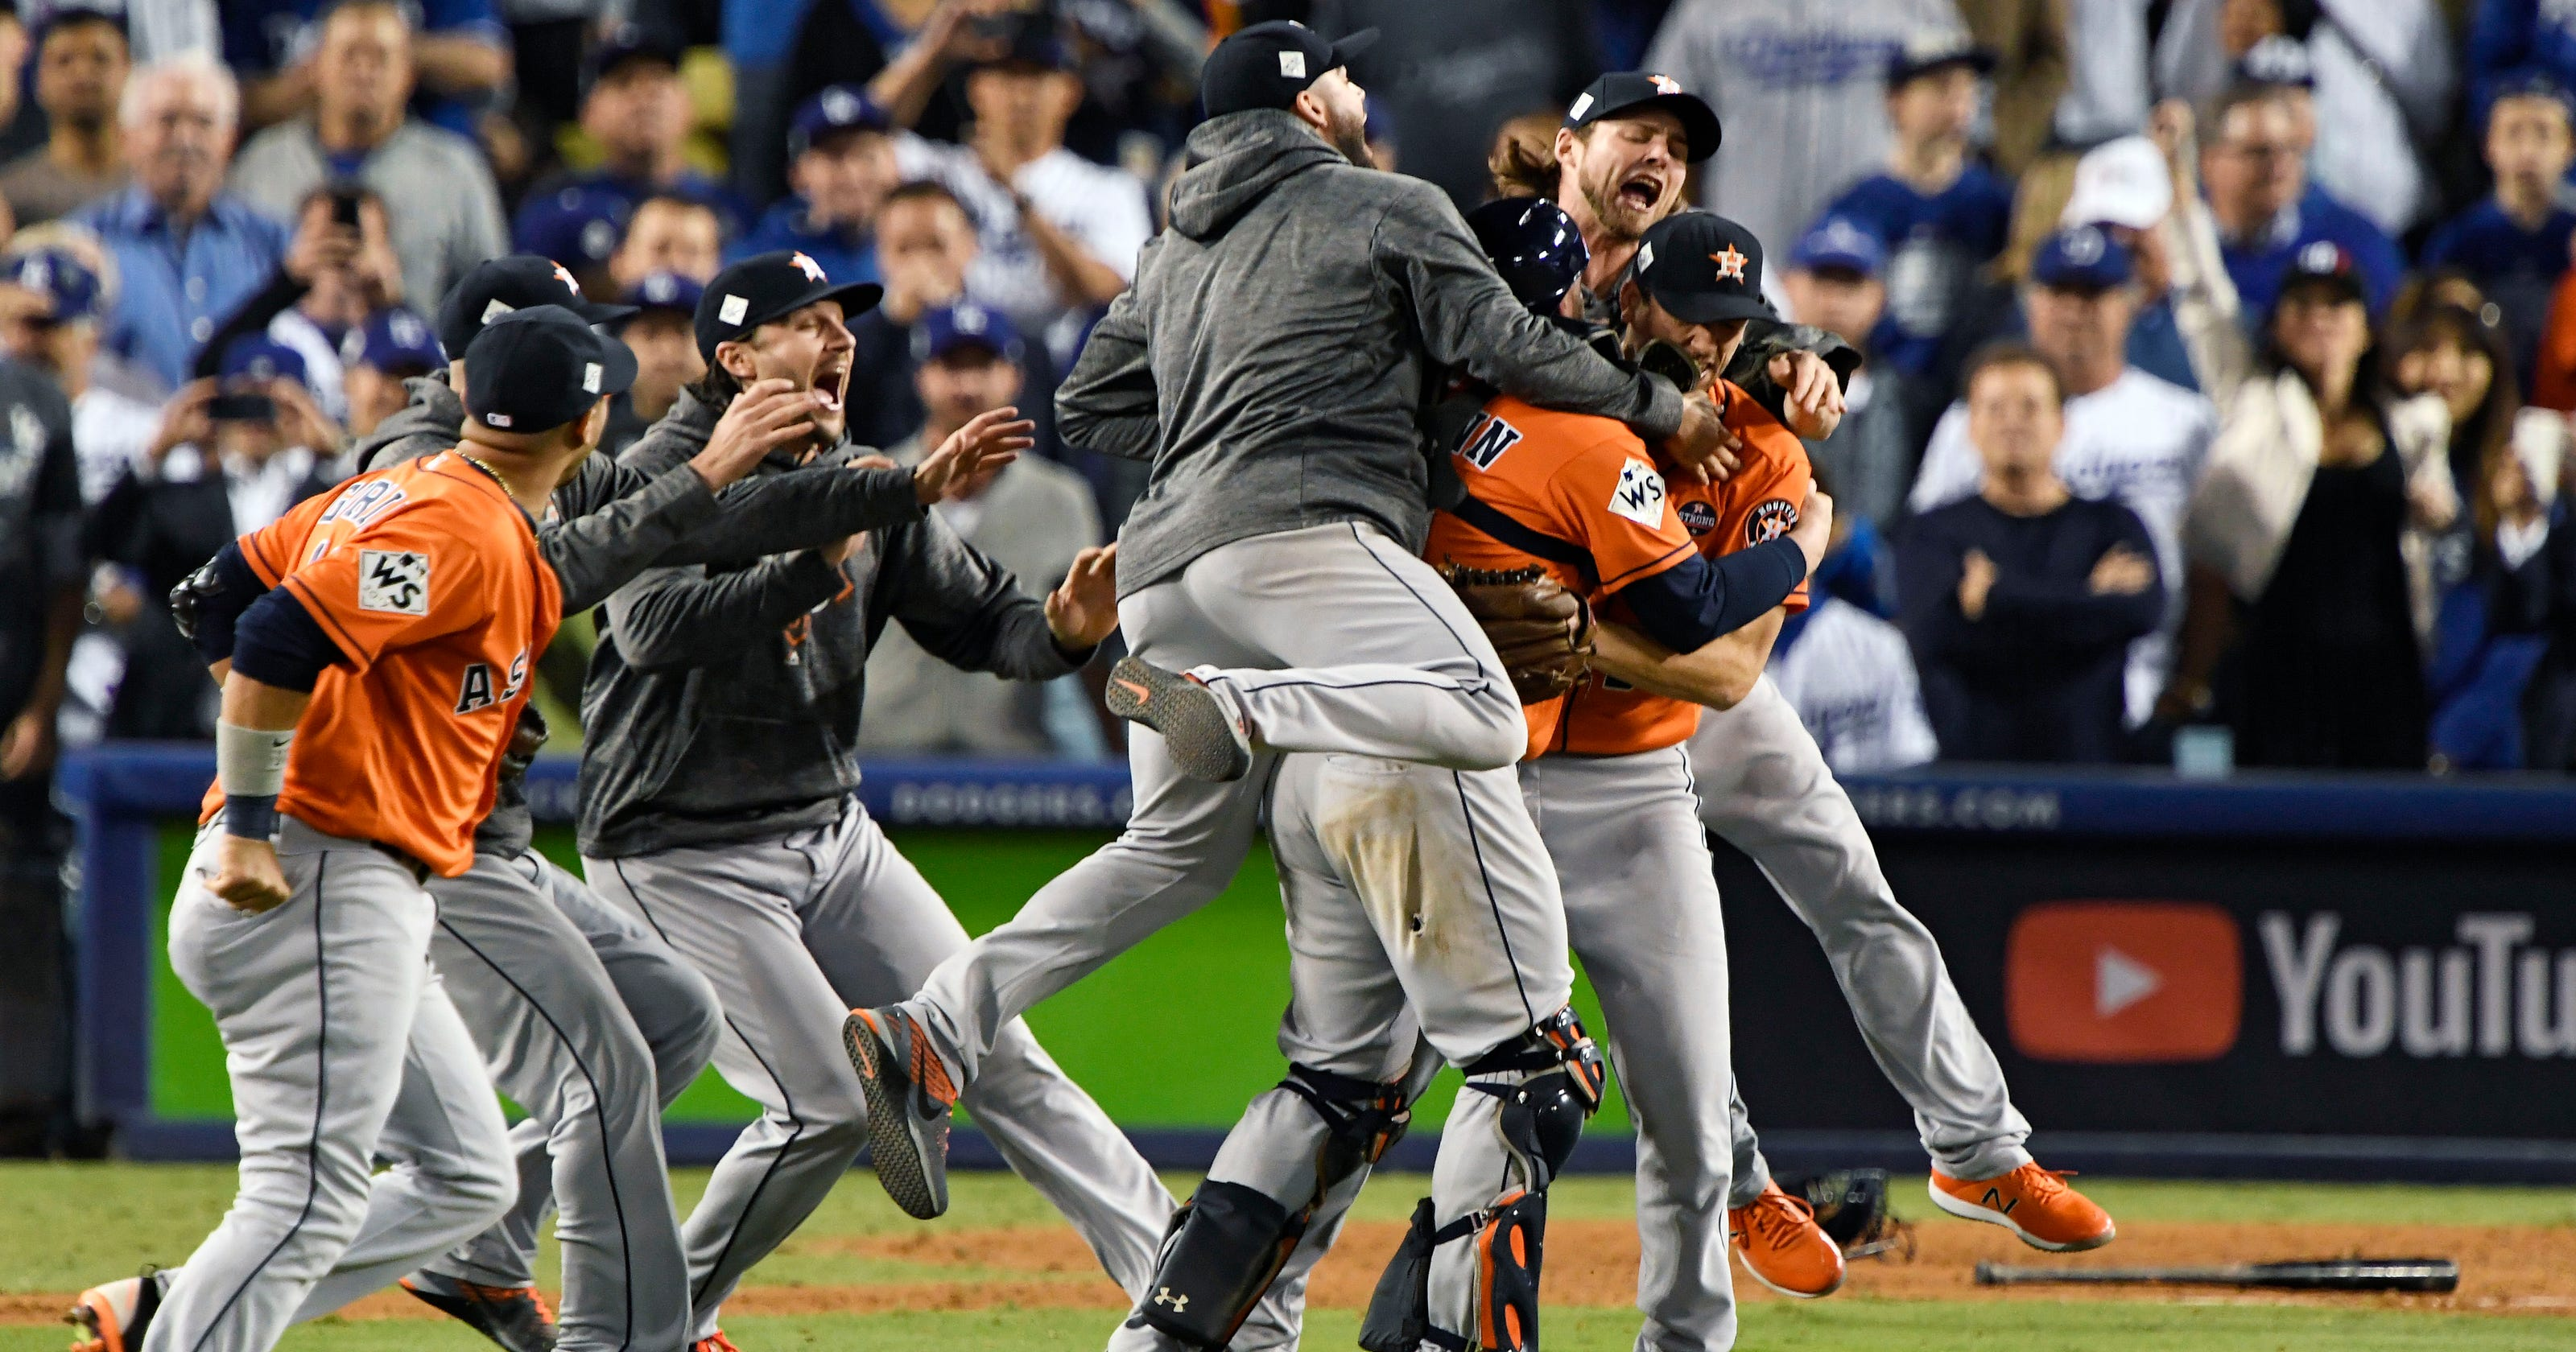 Astros win first World Series championship in franchise